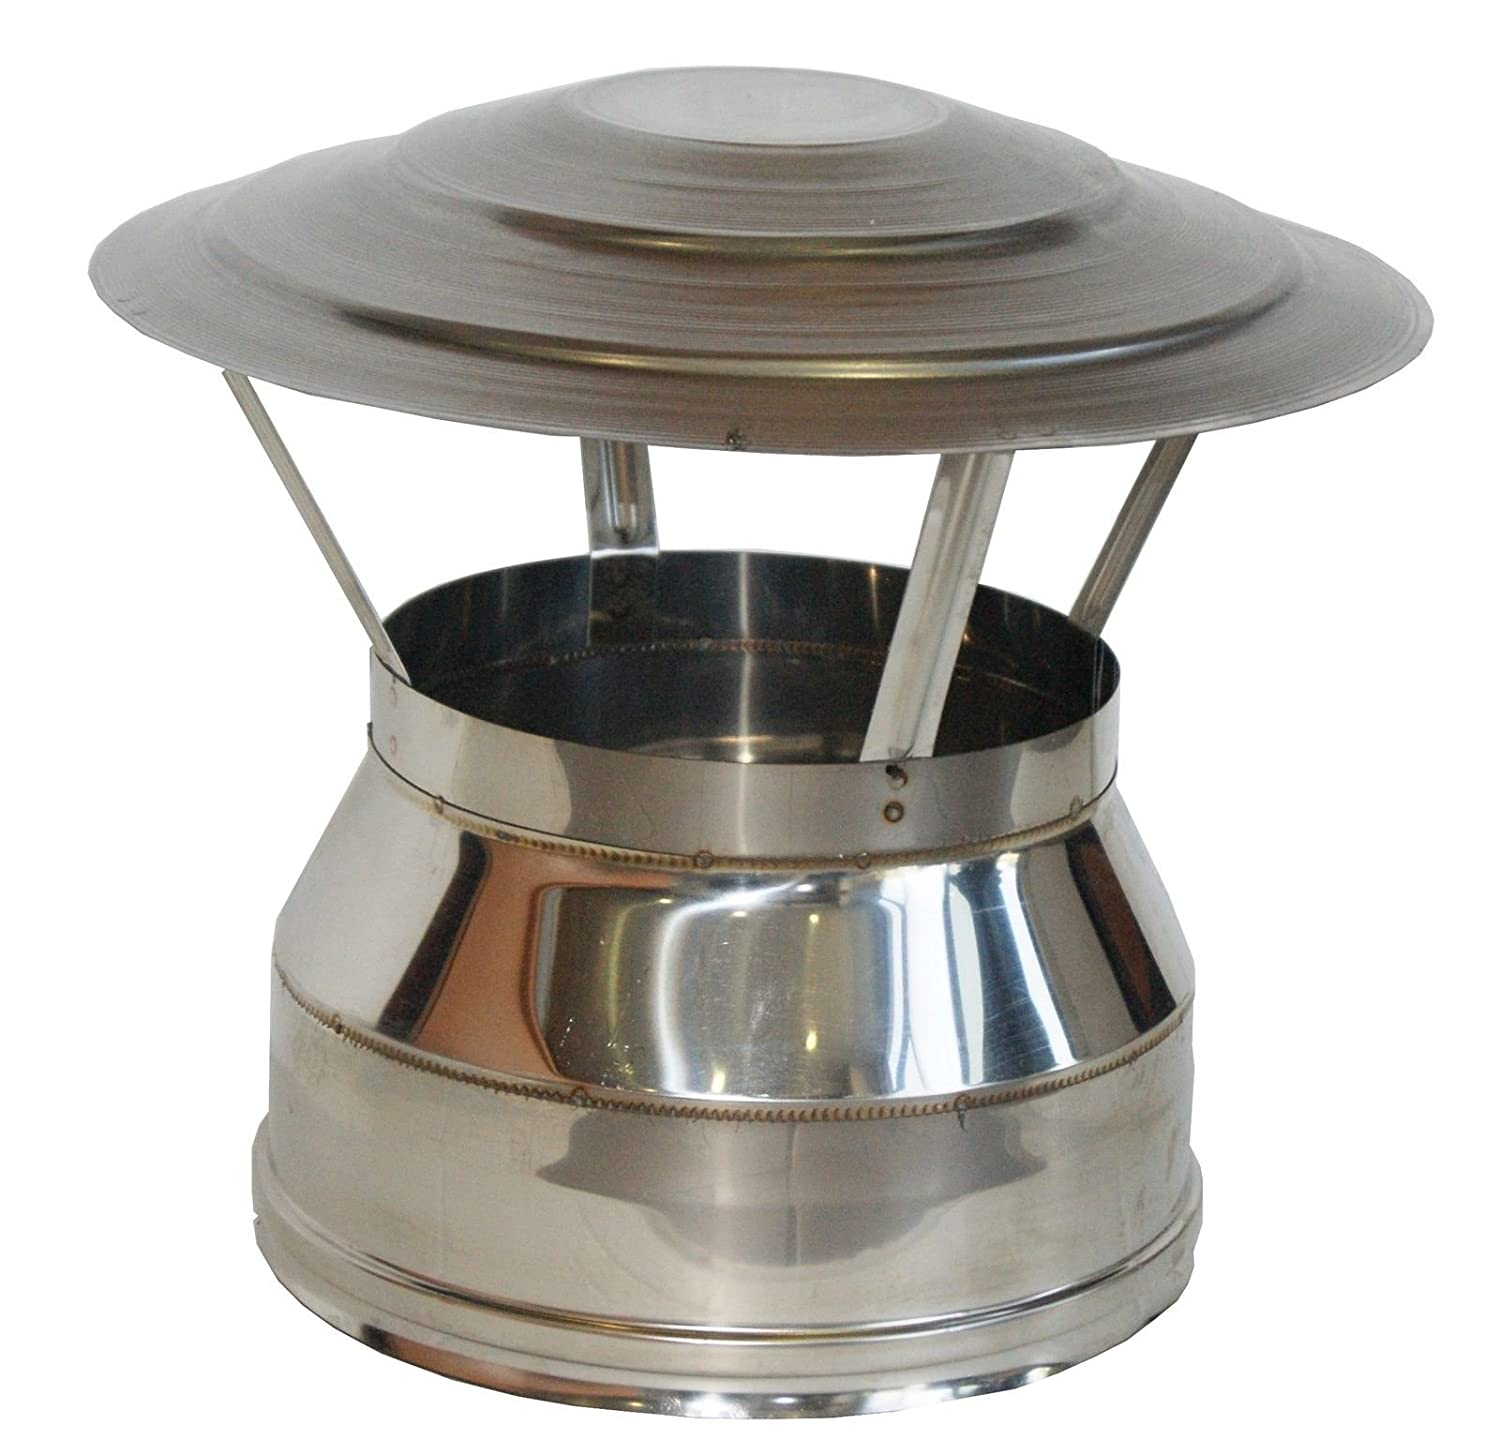 Mister Moby MISTERMOBY 130/180 MM TWIN WALL INSULATED STAINLESS STEEL ROOF COWL CHIMNEY CHINAMANS HAT